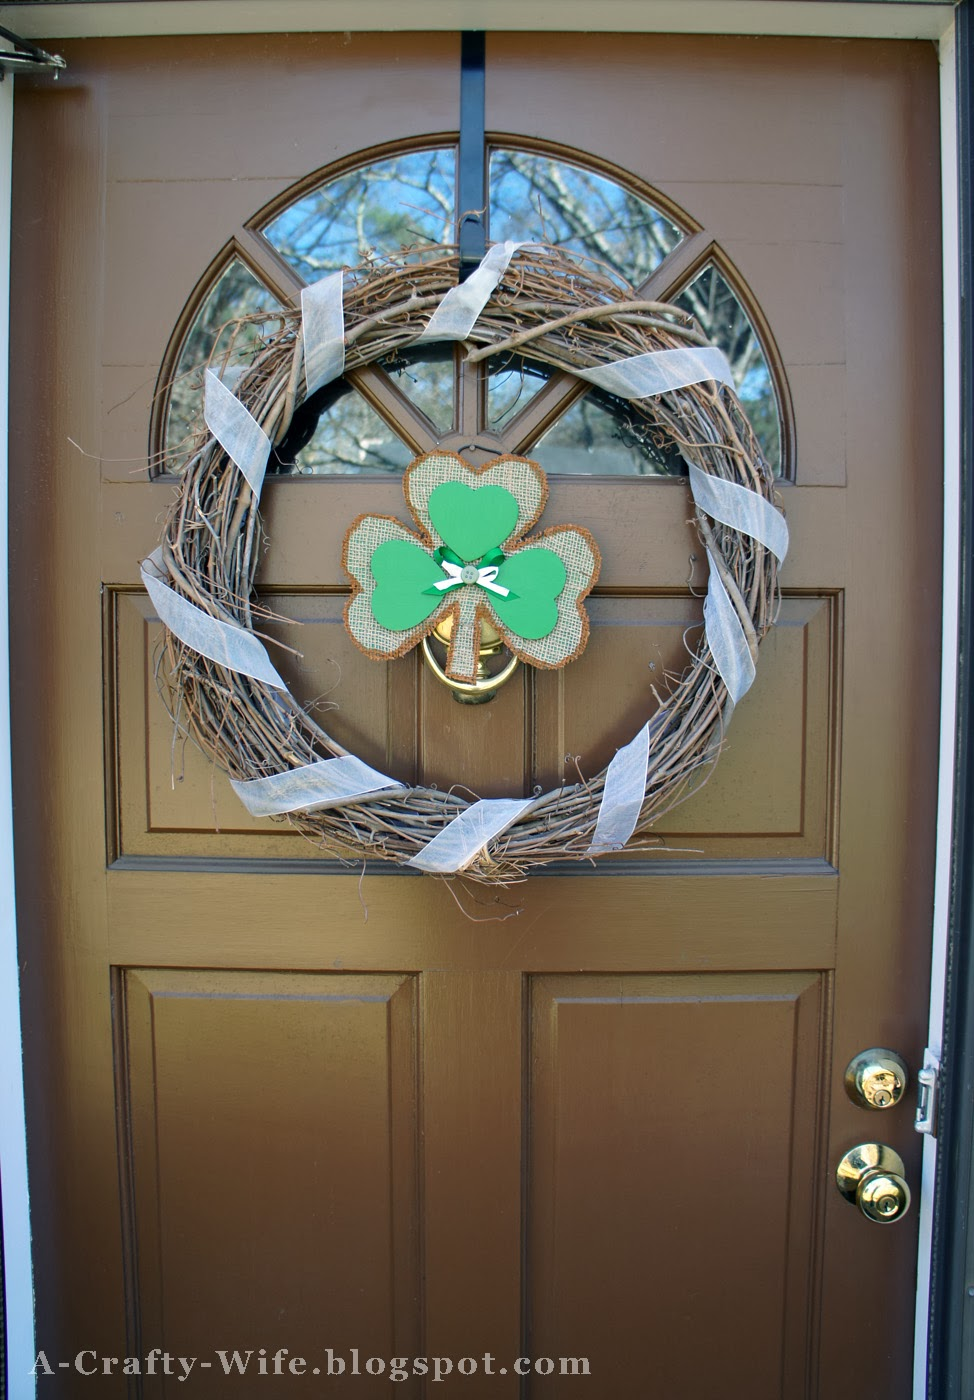 Cardboard shamrock for front door | A Crafty Wife